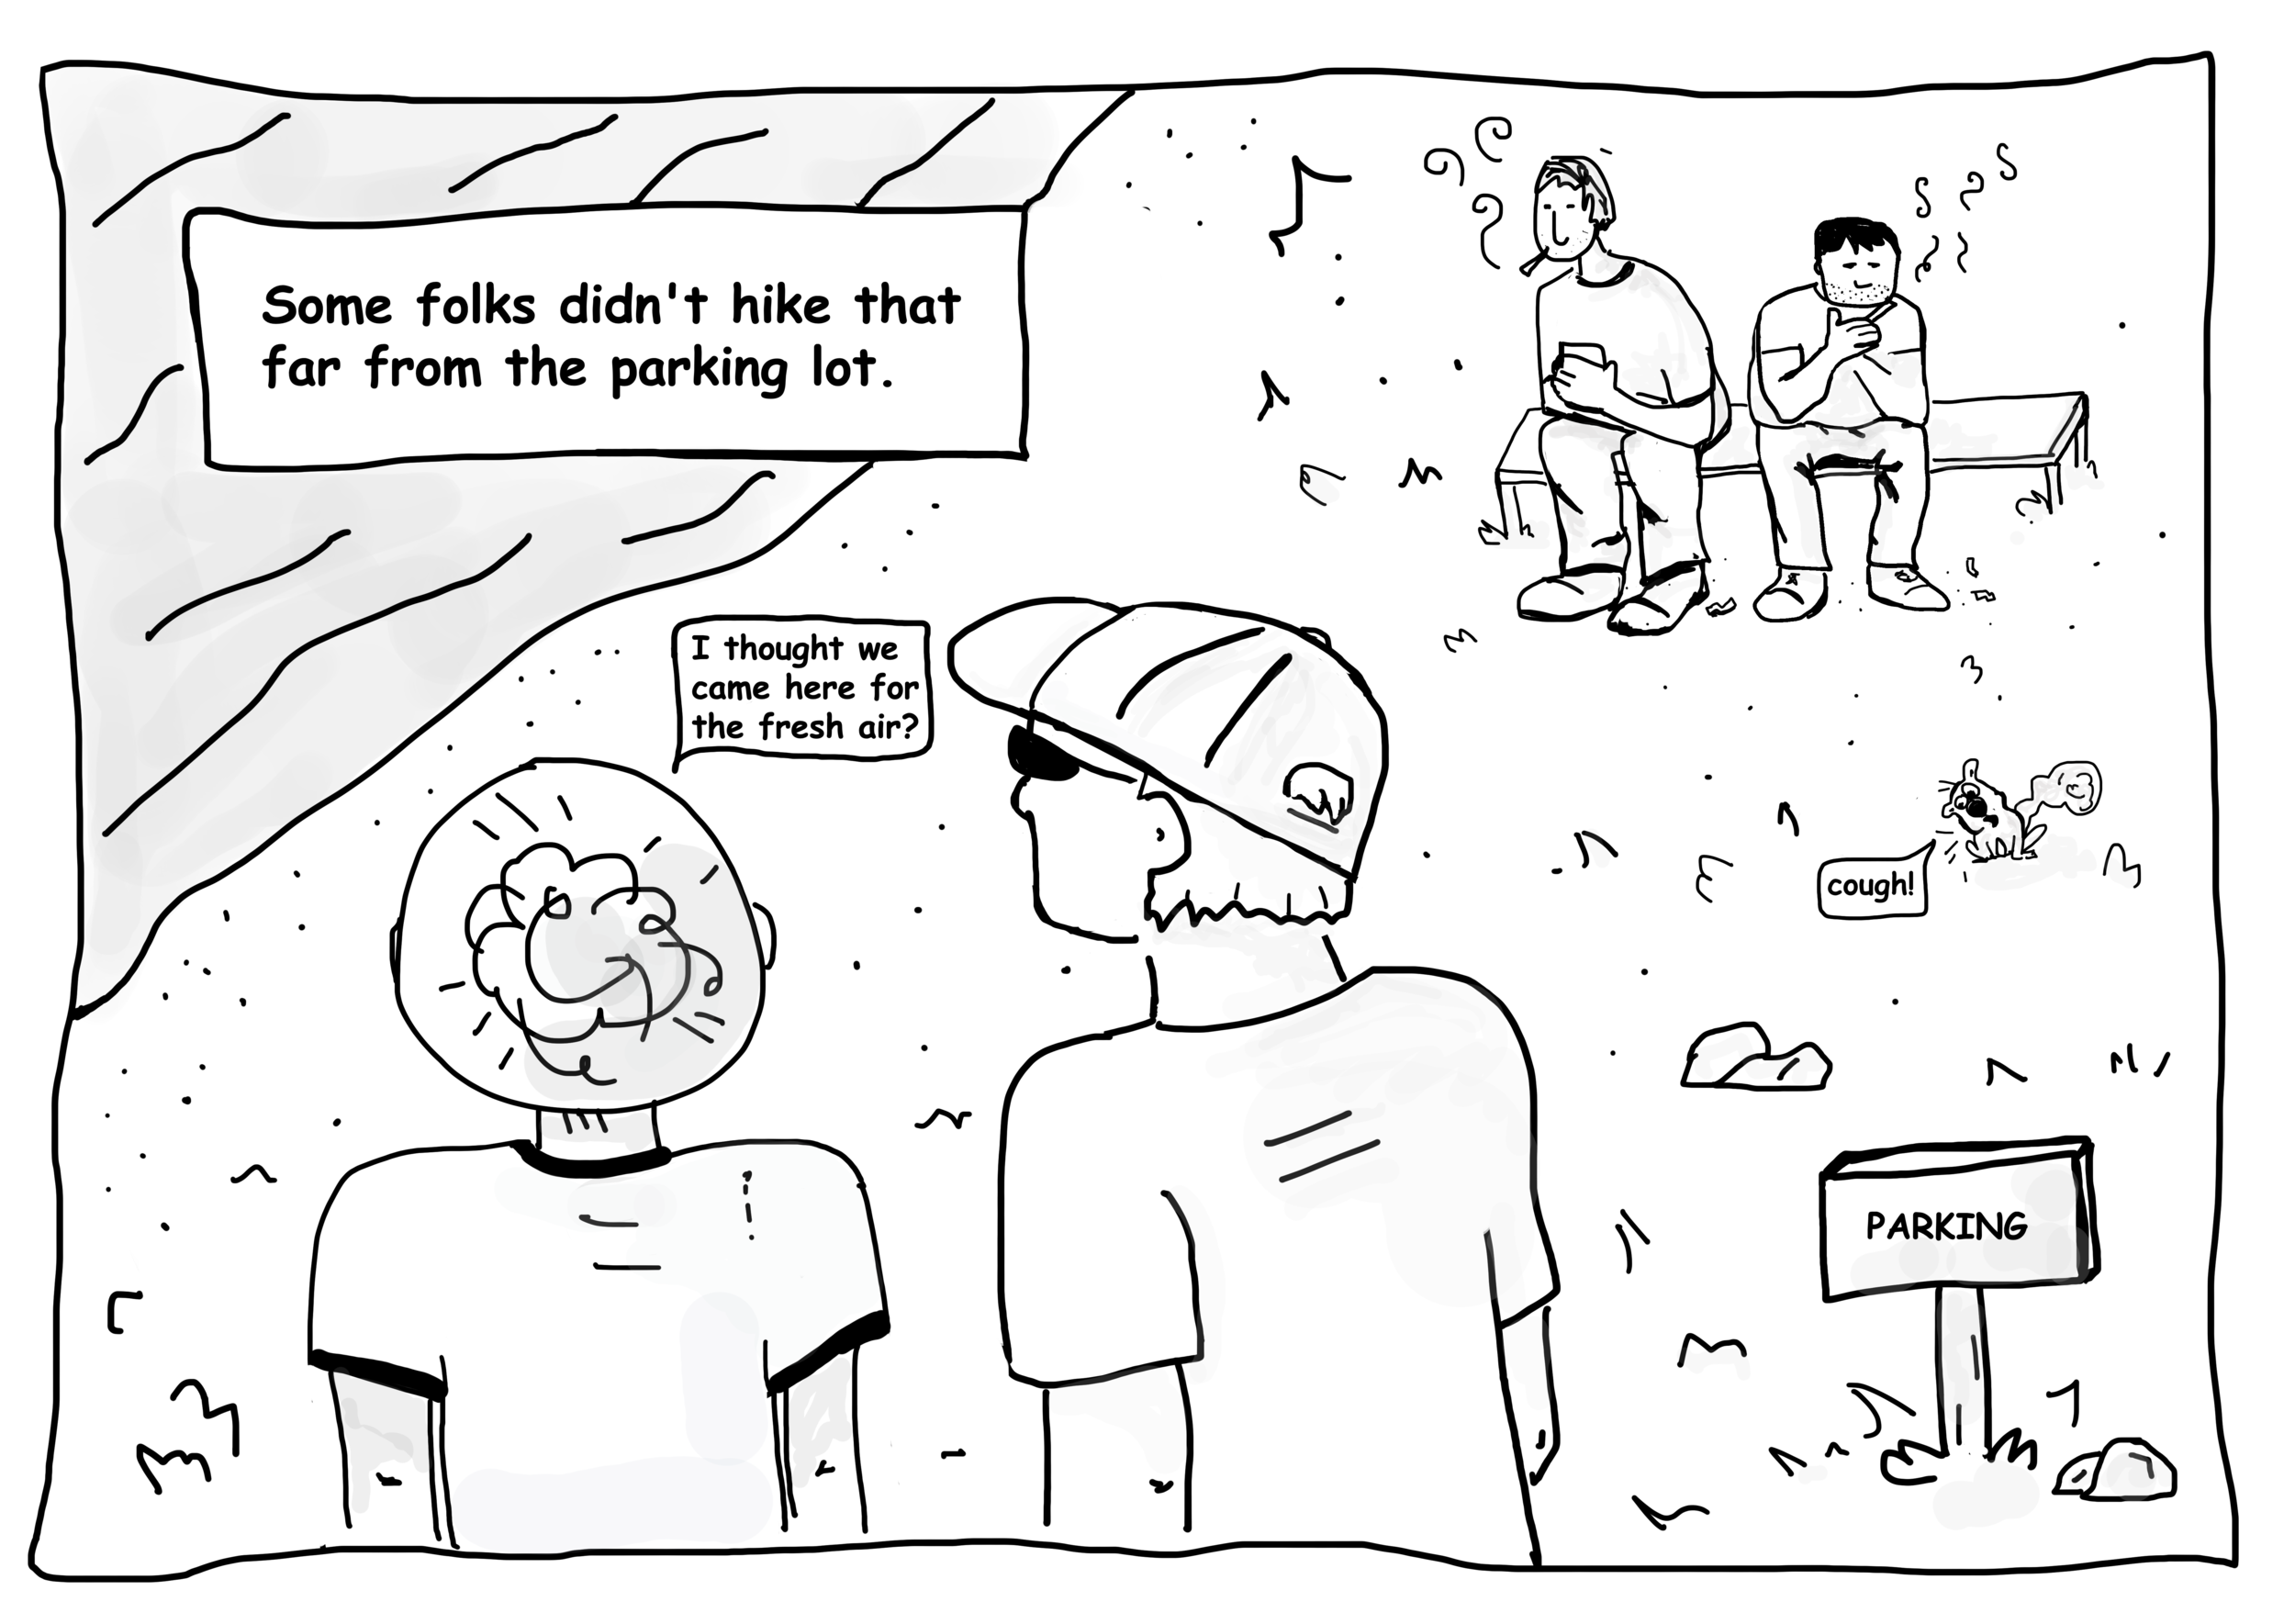 Hiking3.png